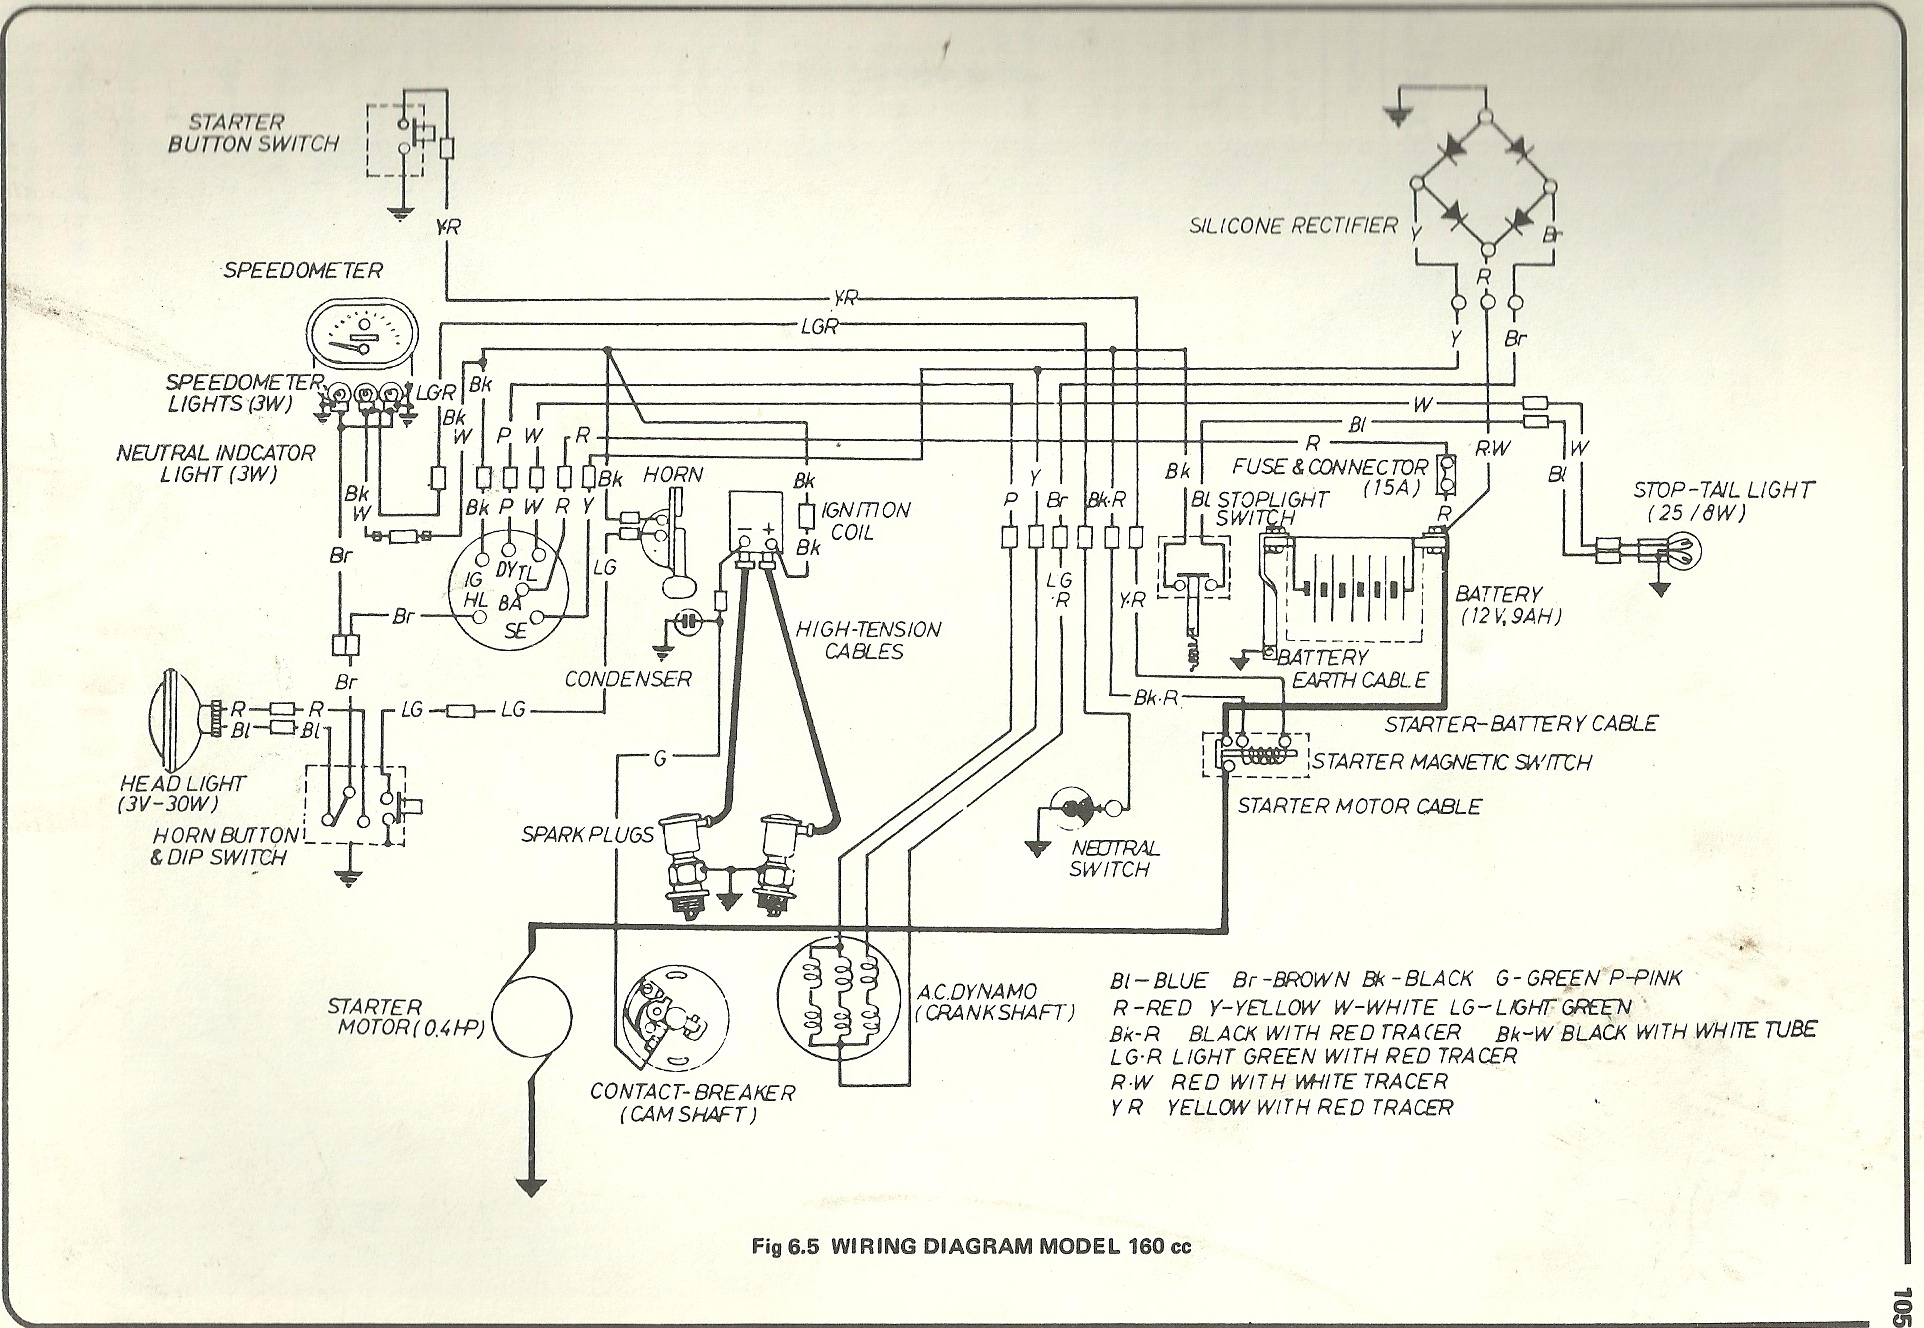 CB1602 wiring diagrams 1981 kawasaki 440 ltd wiring diagram at n-0.co